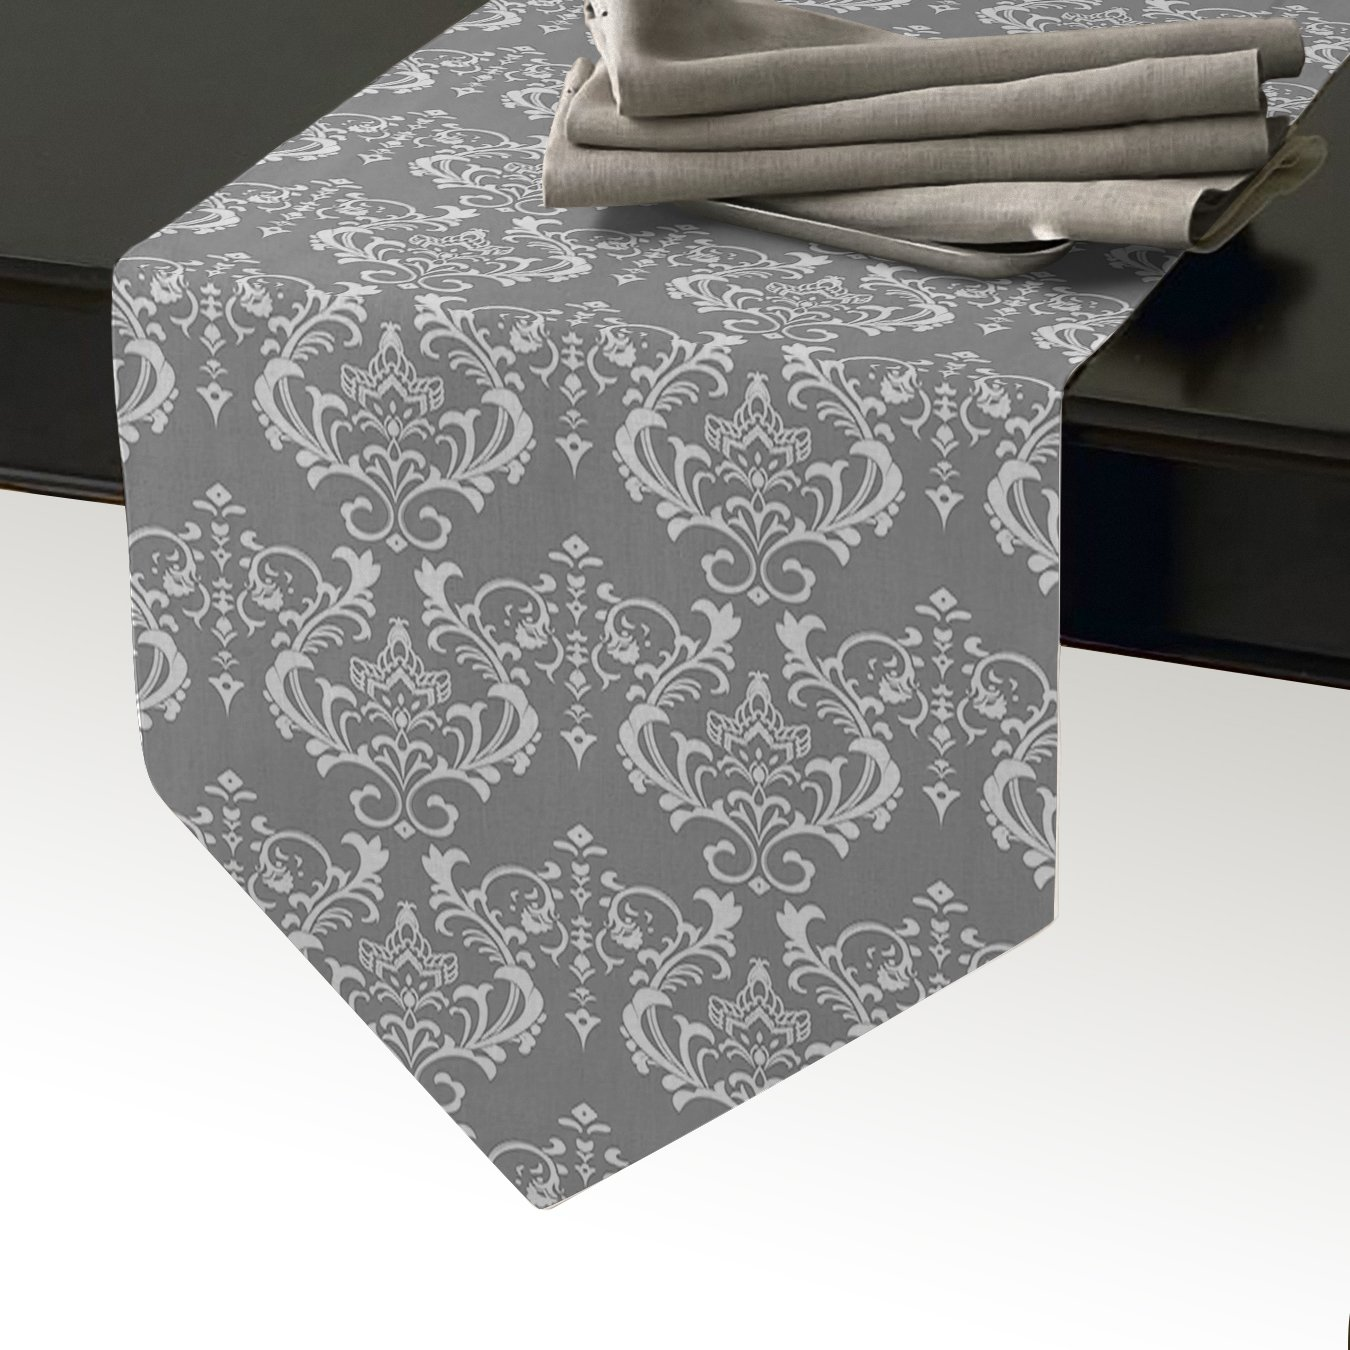 Cloud Dream European Lattice Table Runner For Dinner Parties, Summer & Outdoor Picnics and Everyday Use - 14x72inch,White/Grey